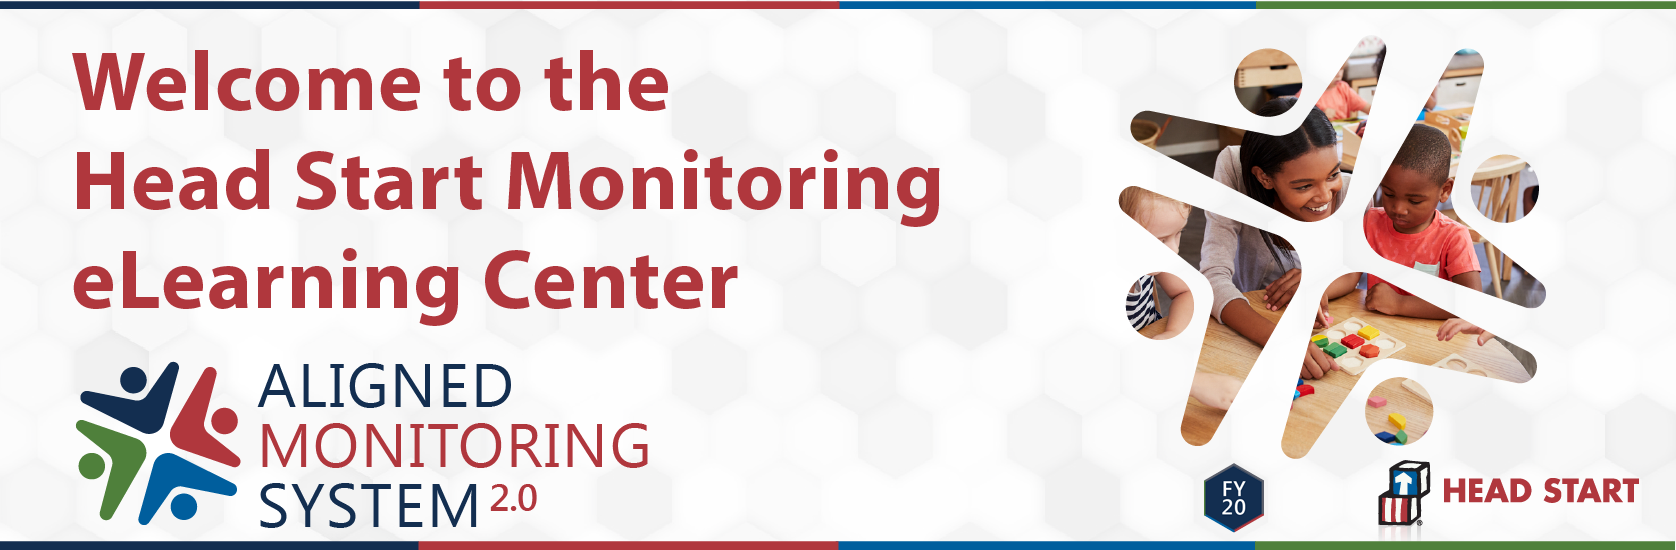 Welcome to the Head Start Monitoring eLearning Center Fiscal Year 2018